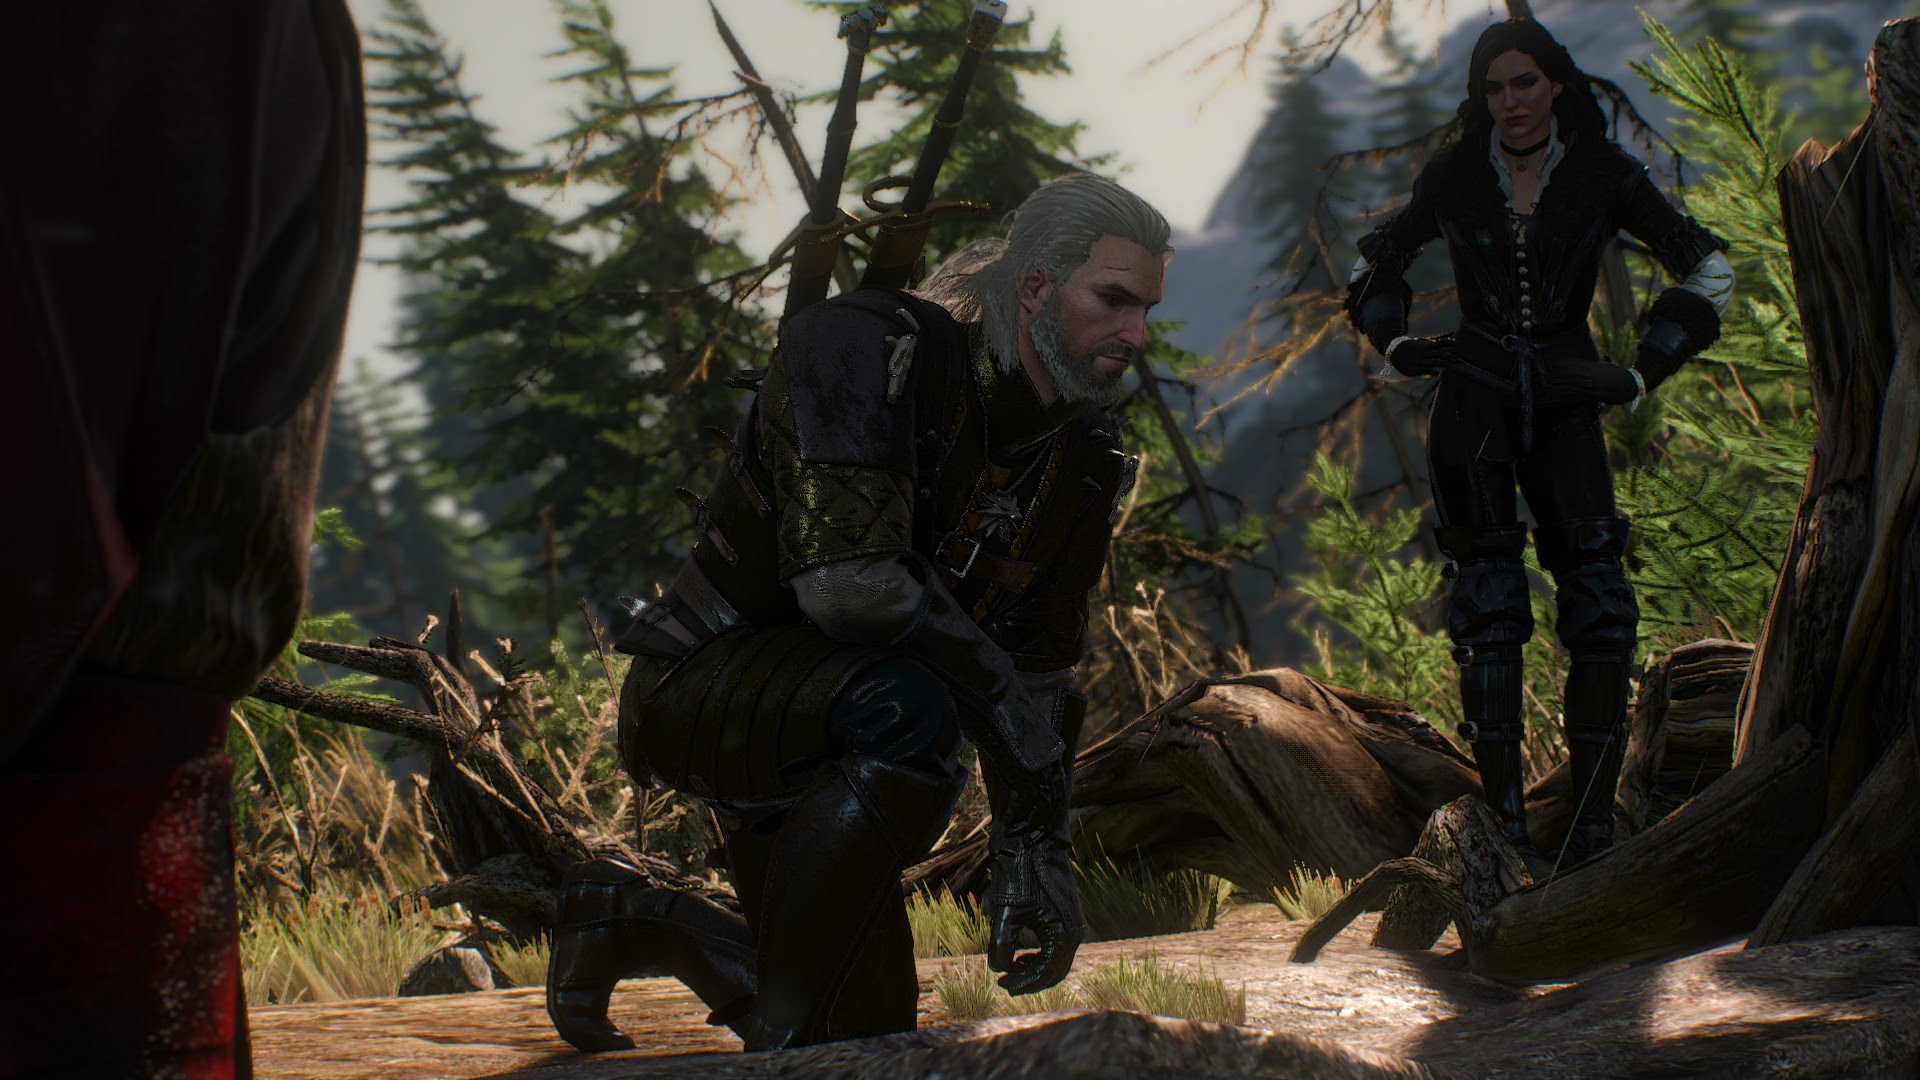 1920x1080 Px Geralt Of Rivia The Witcher 3 Wild Hunt Yennefer Of